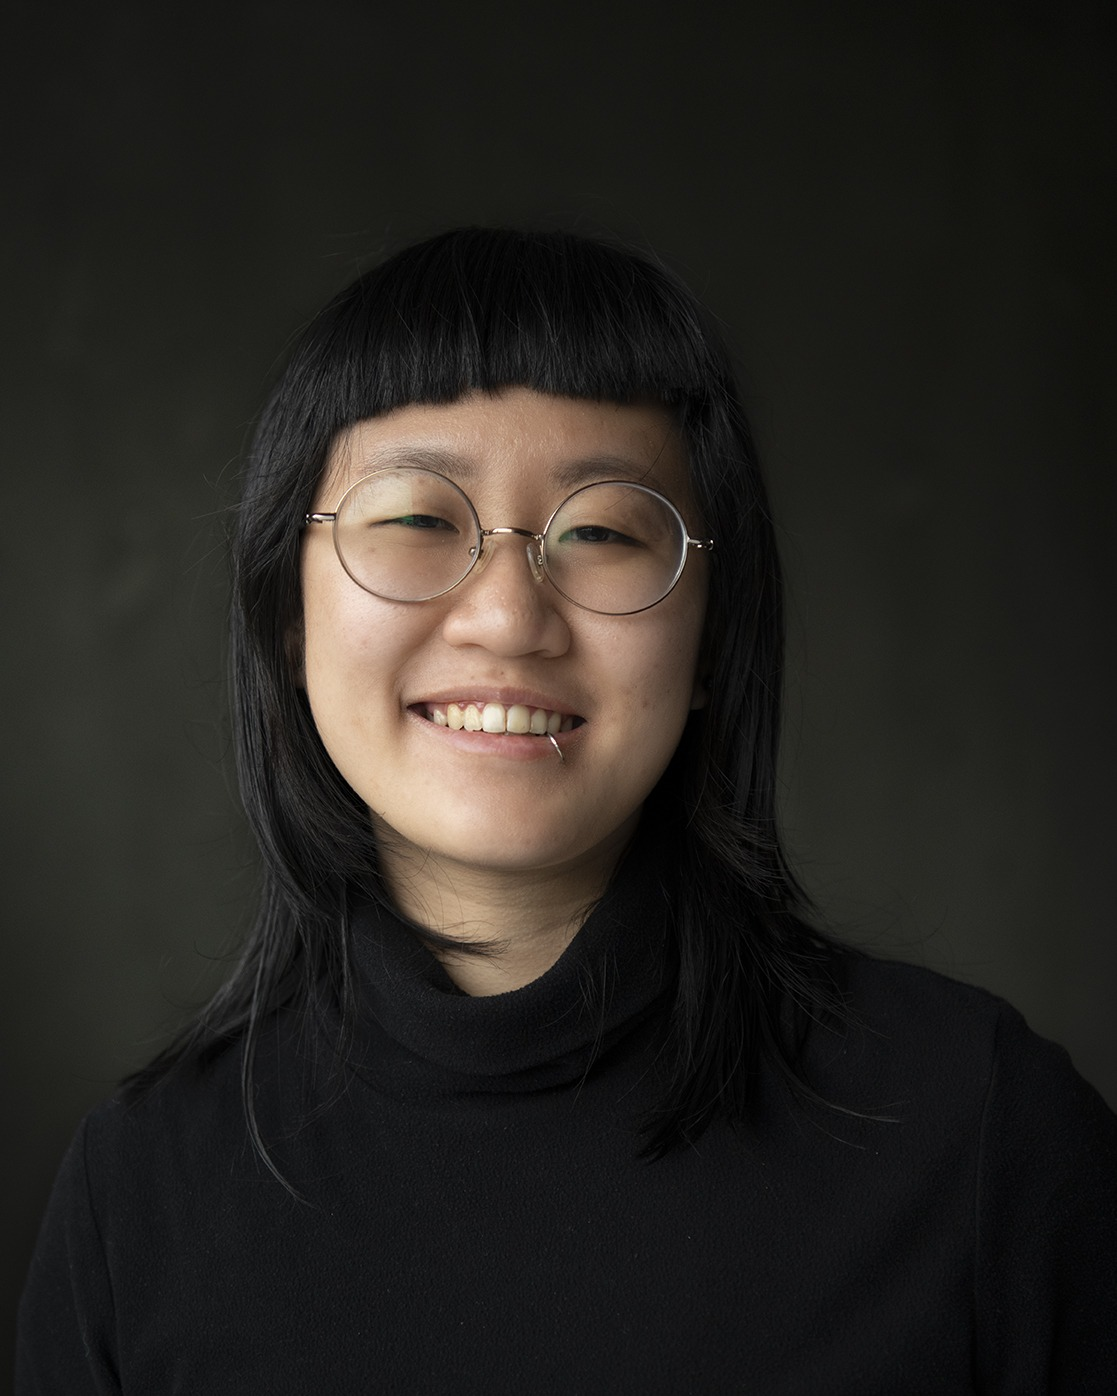 A person with short bangs and glasses smiling in front of a black background